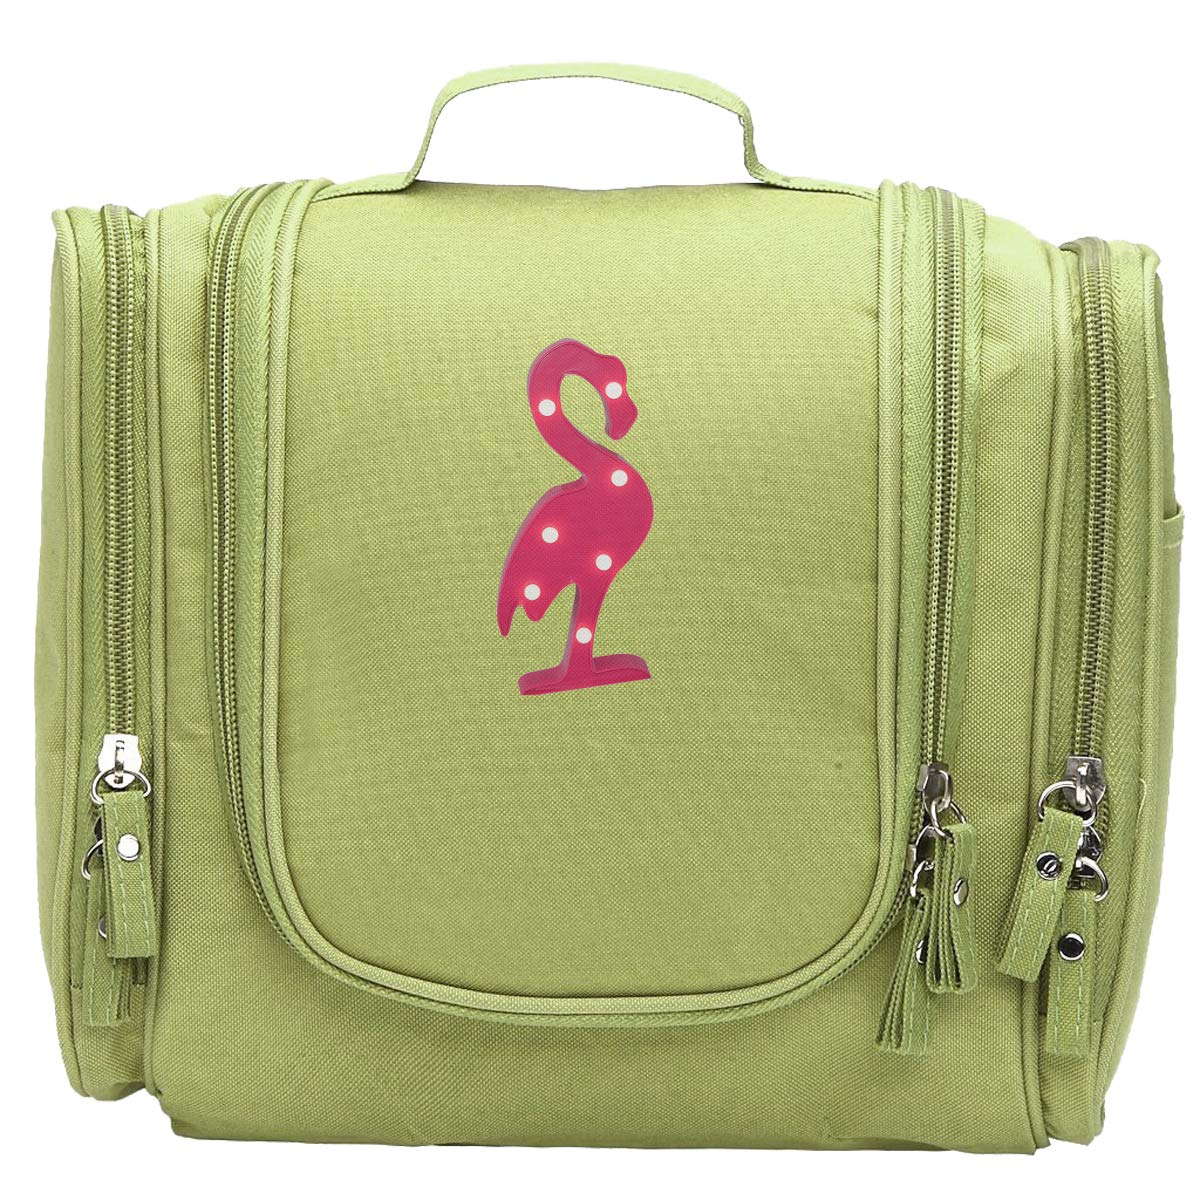 Amazon.com: Lampara Flamingo Large Travel Makeup Bags ...